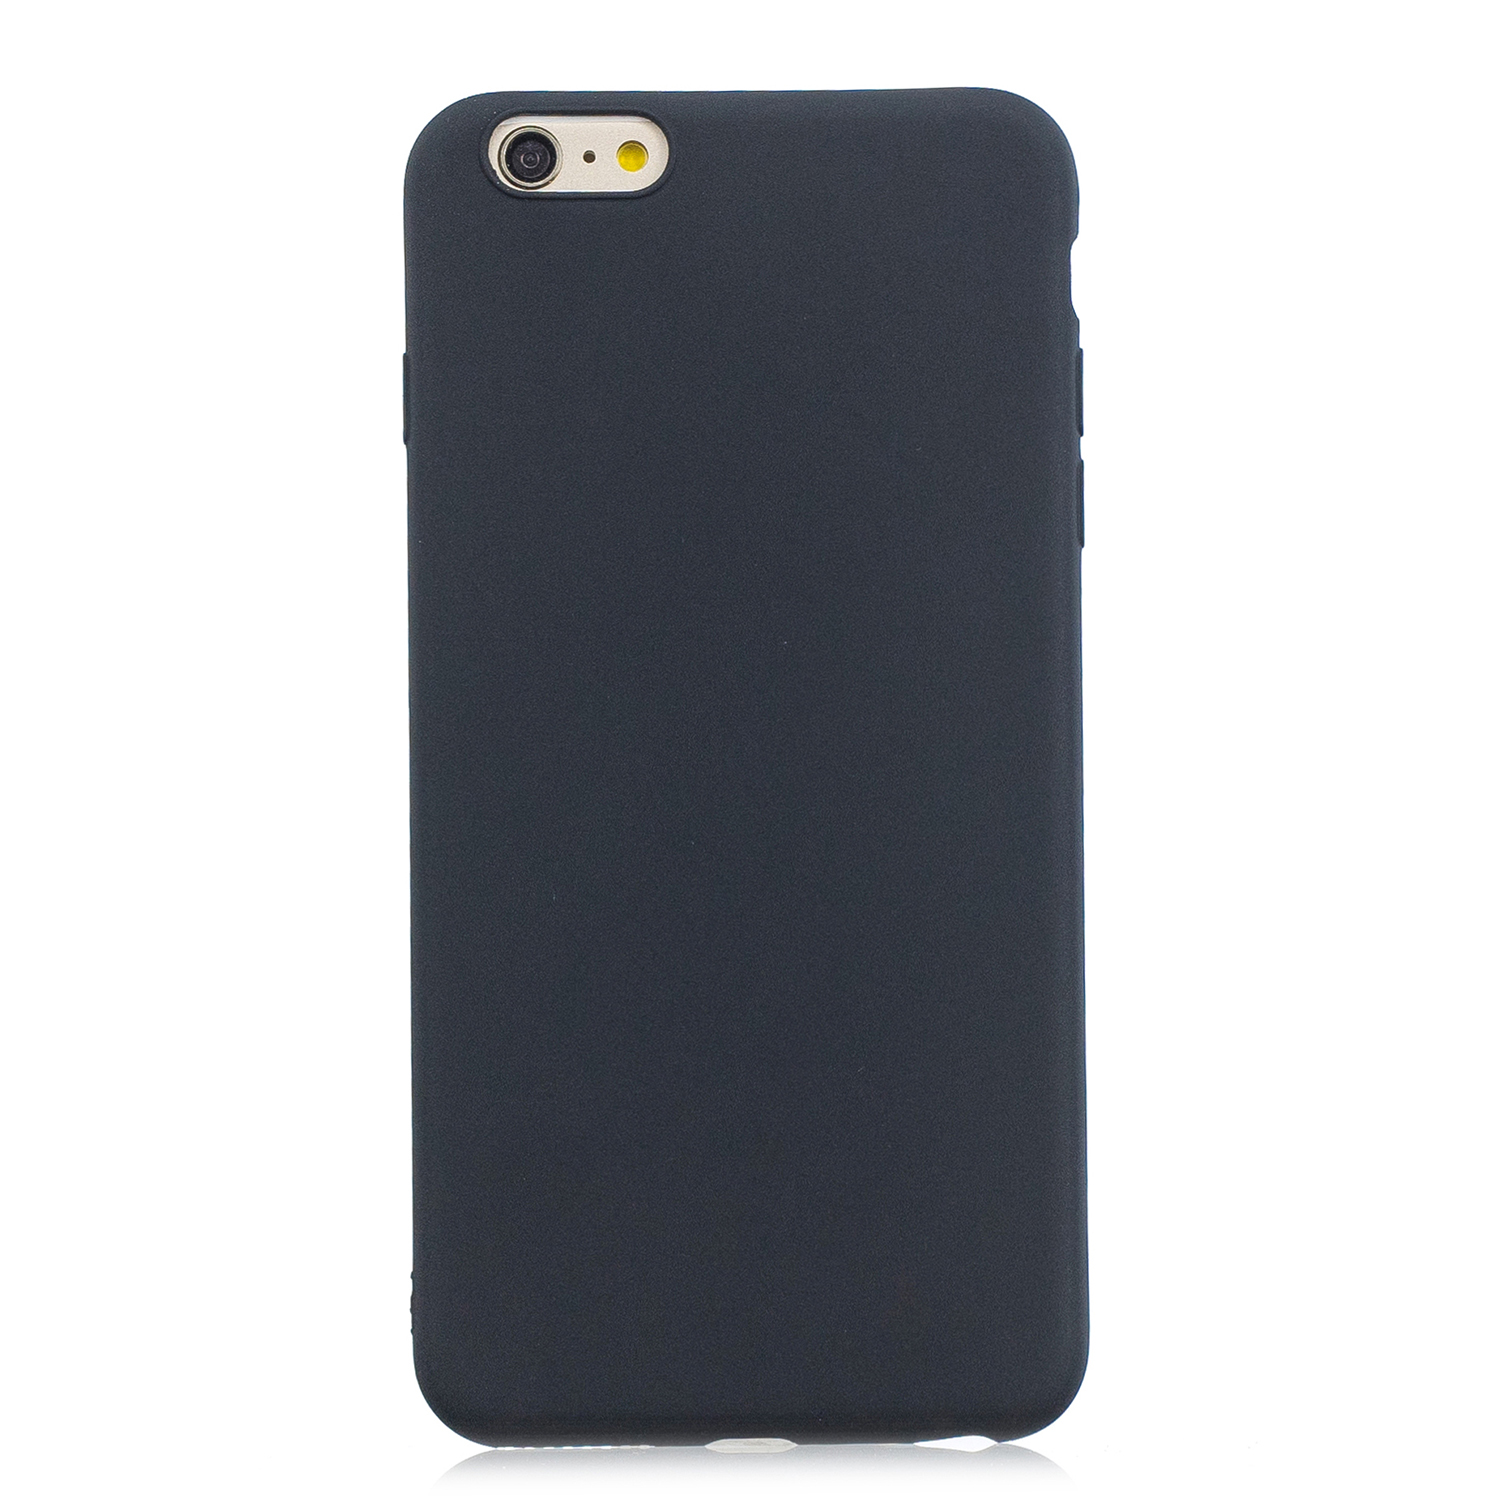 for iPhone 6/6S Lovely Candy Color Matte TPU Anti-scratch Non-slip Protective Cover Back Case black